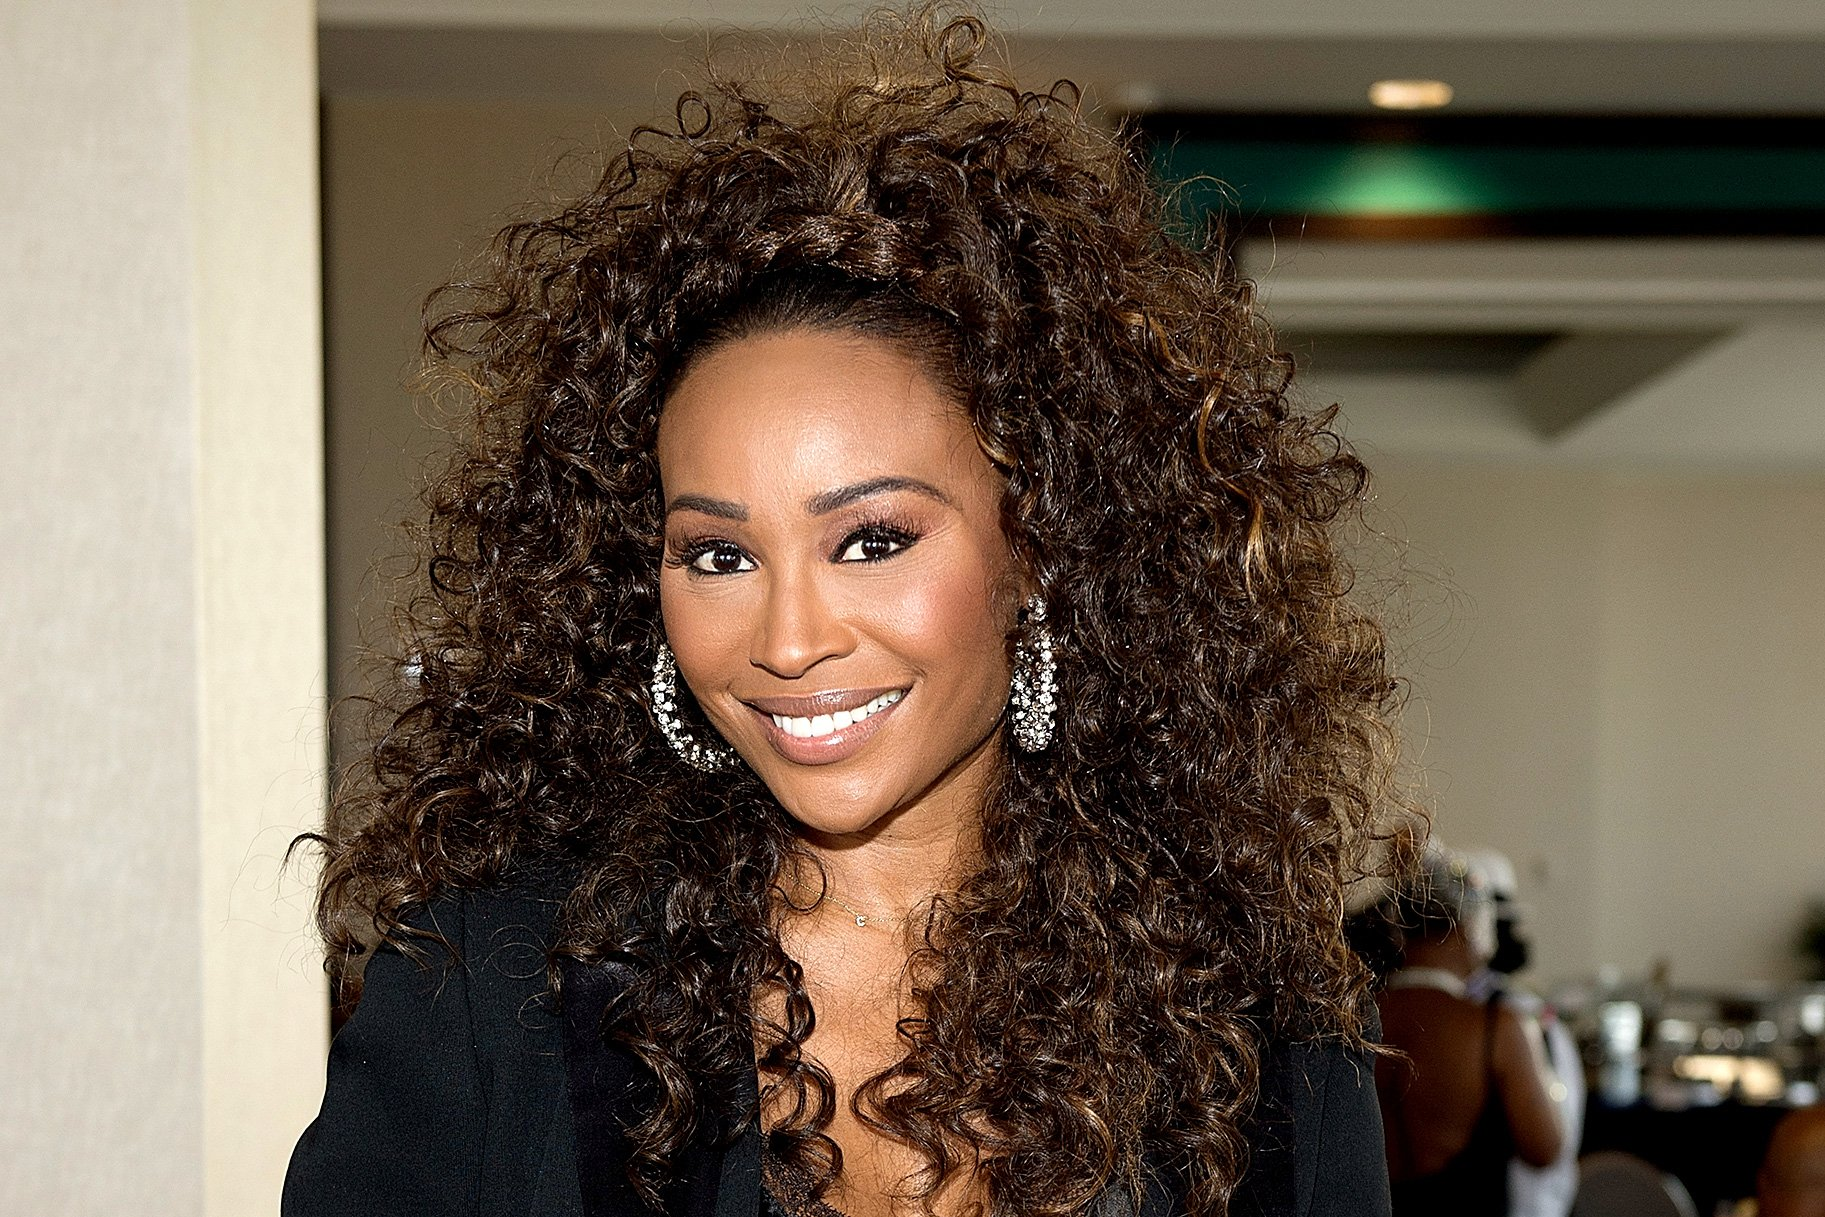 Cynthia Bailey Sparks Pregnancy Rumors Following This Video – See Her And Mike Hill's Dance At Their Wedding!